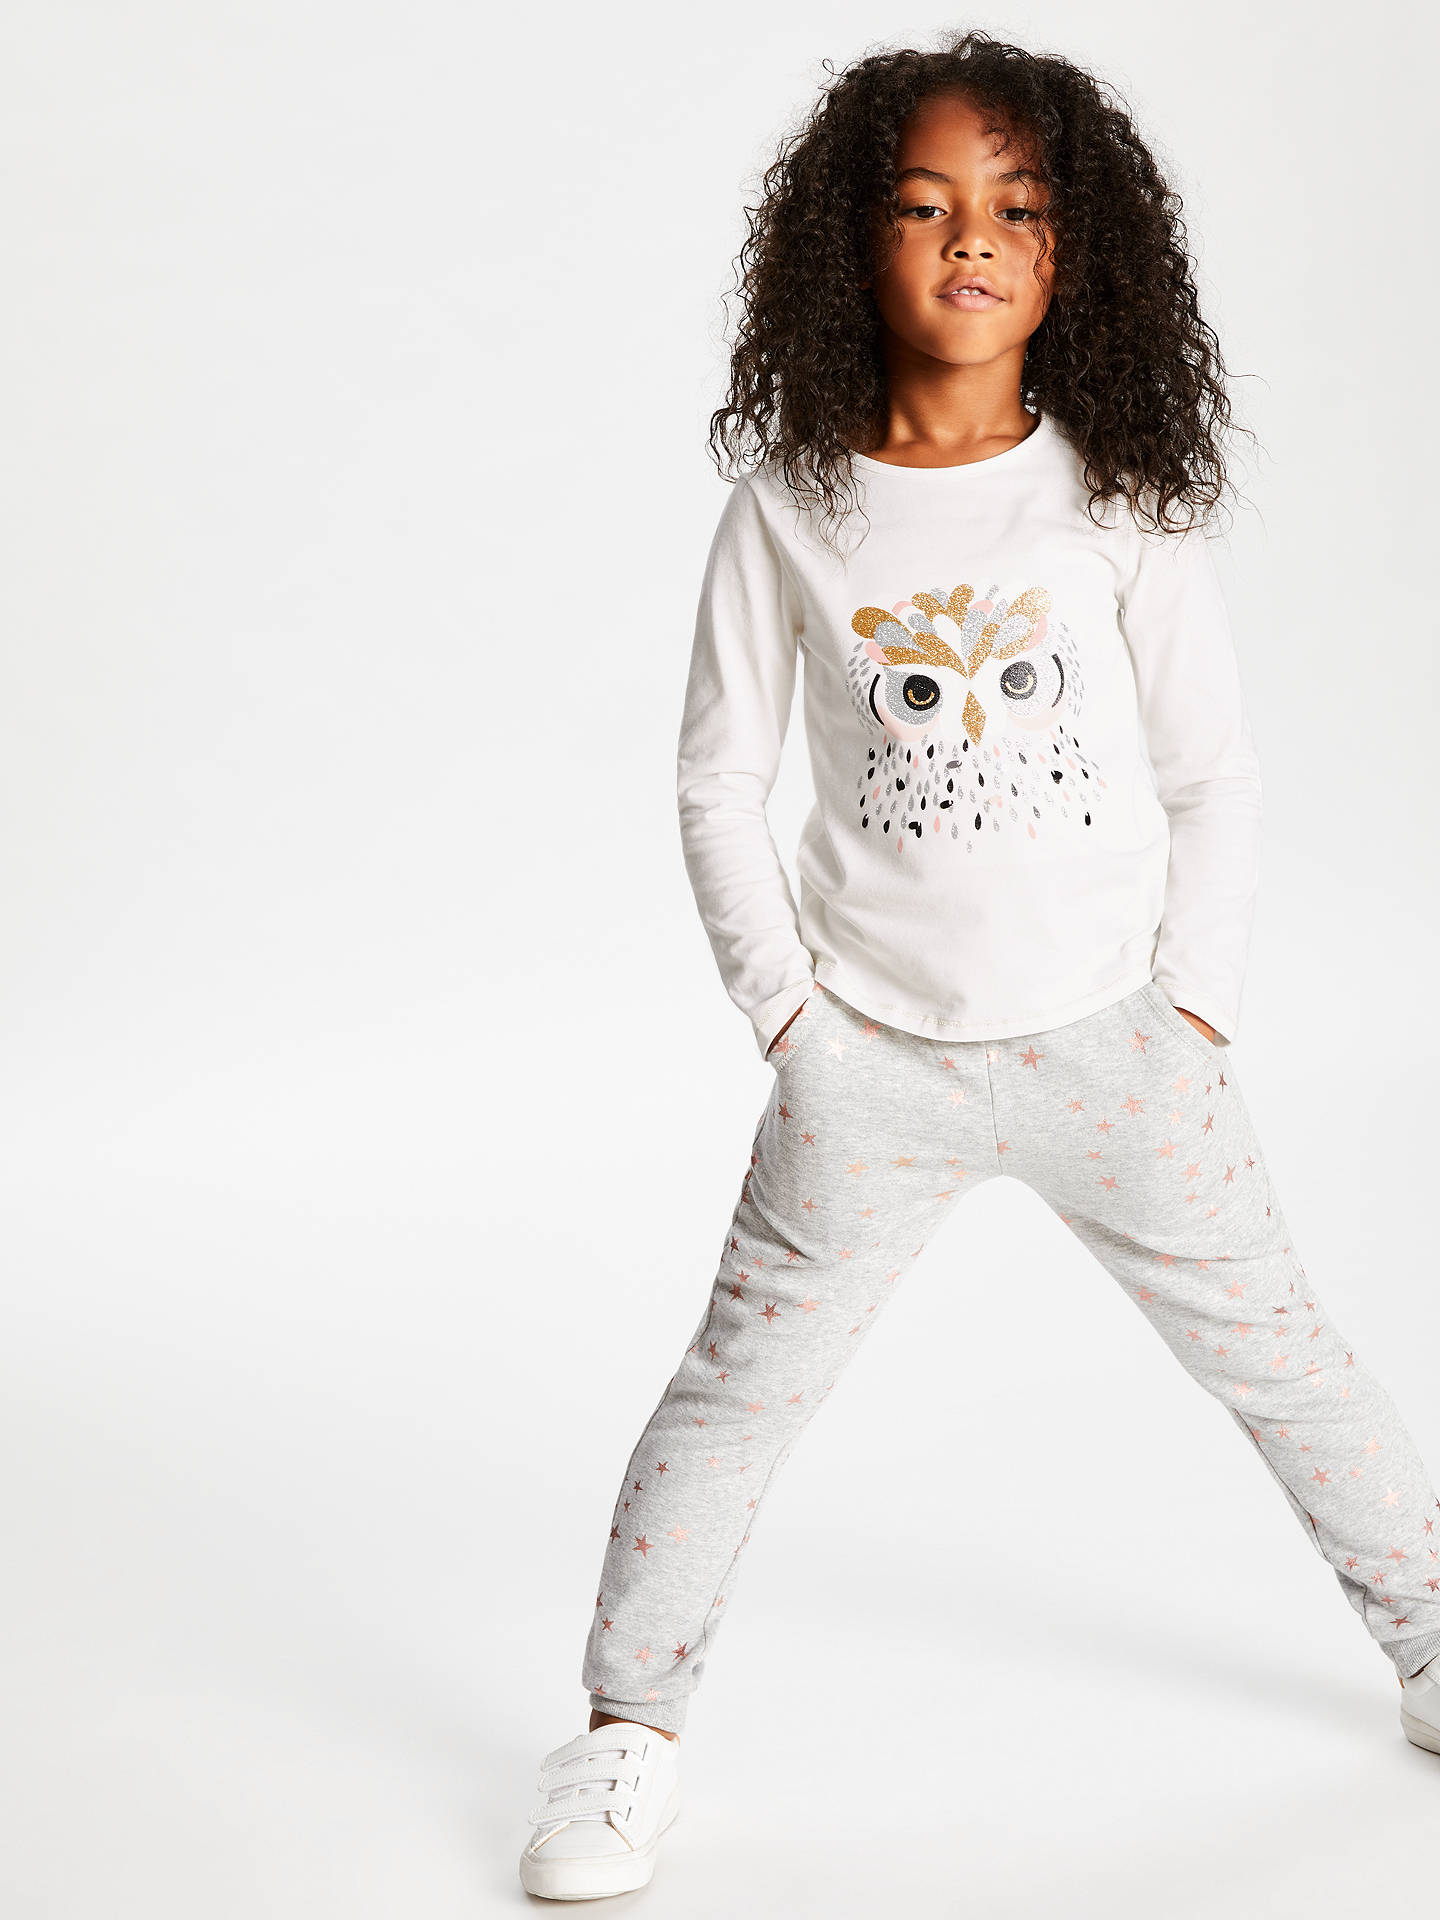 BuyJohn Lewis & Partners Girls' Glitter Owl T-Shirt, Gardenia, 3 years Online at johnlewis.com